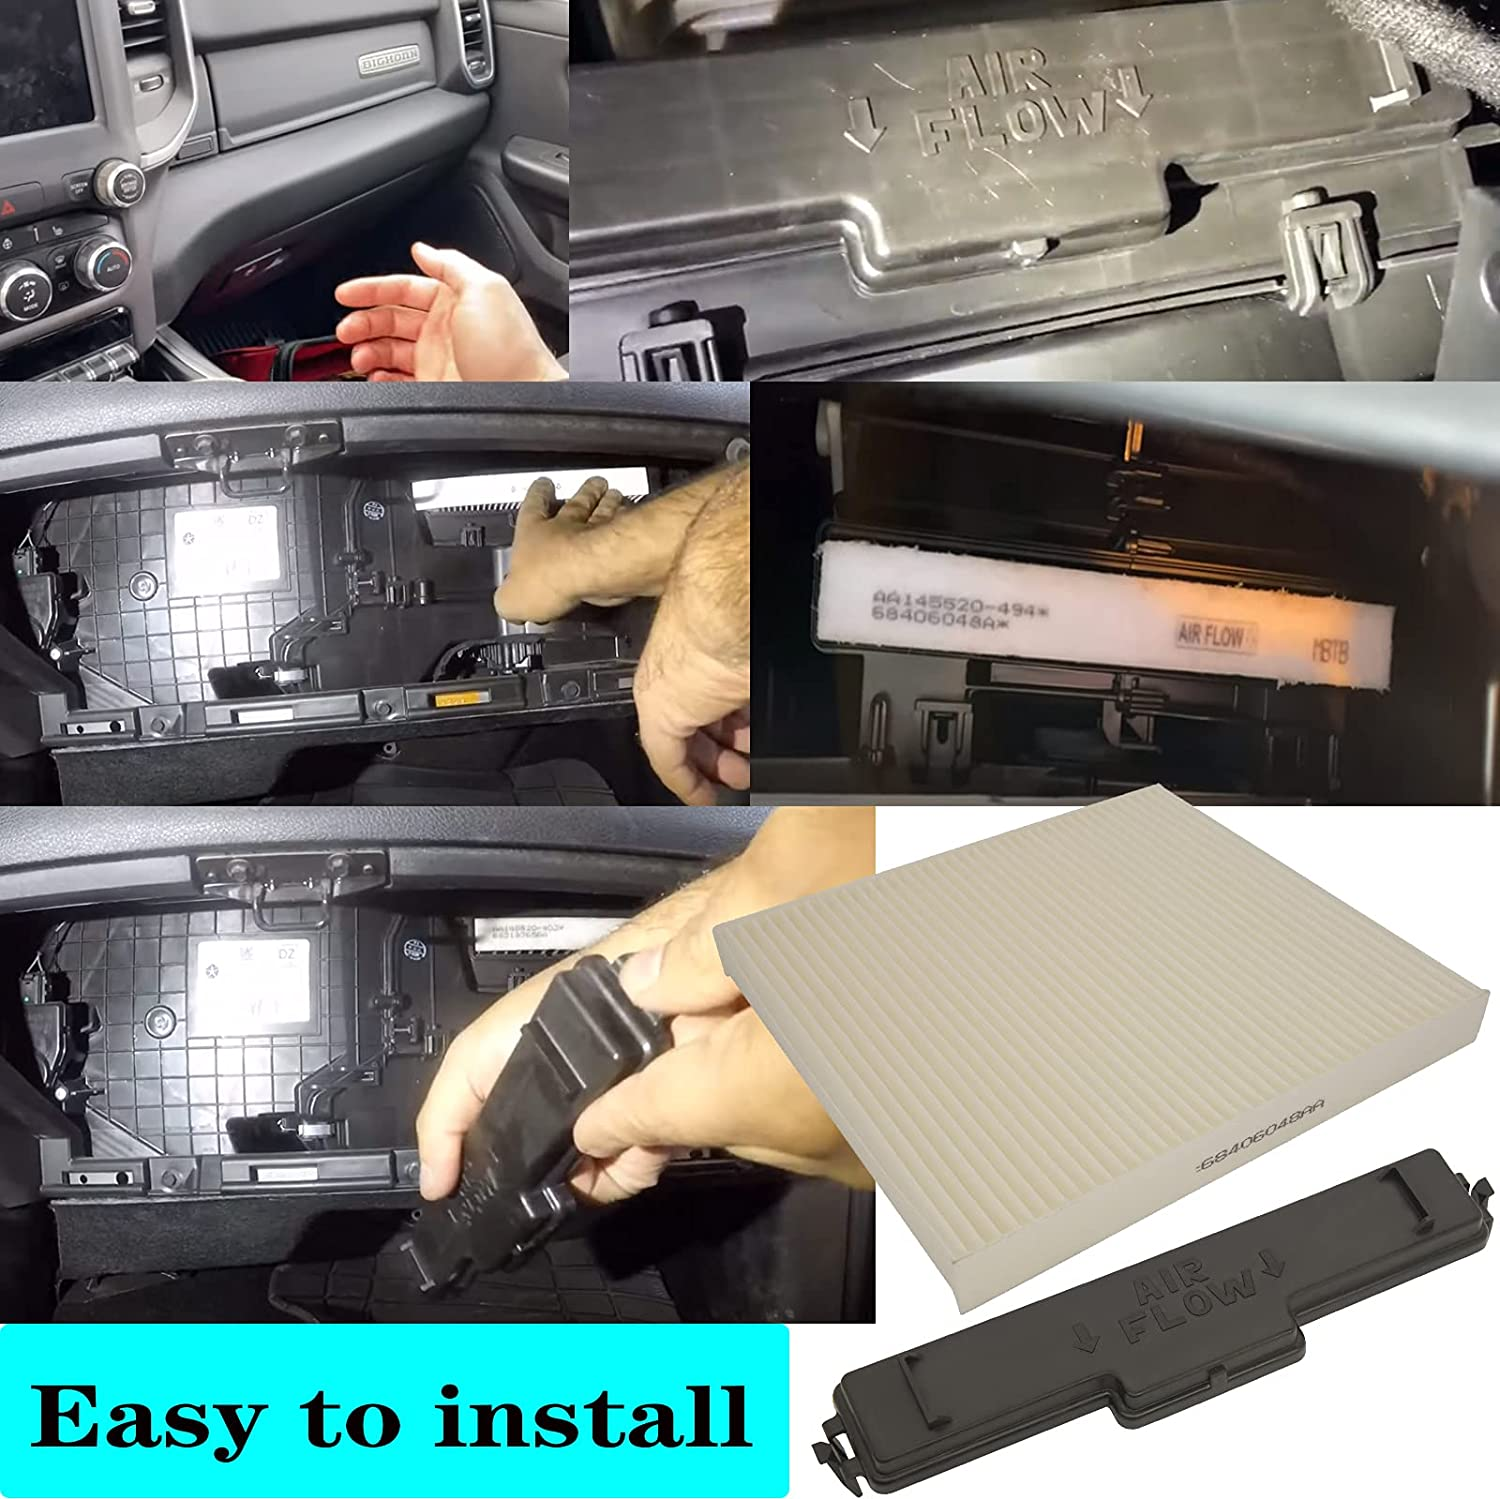 Buy 68406048aa Cabin Air Filter 68318365aa 68052292aa Cabin Air Filter Access Door Compatible With Dodge Ram 1500 2500 3500 Cabin Air Filter Kit 5058693aa Kit By Bootop Online In Poland B08z7w9j98